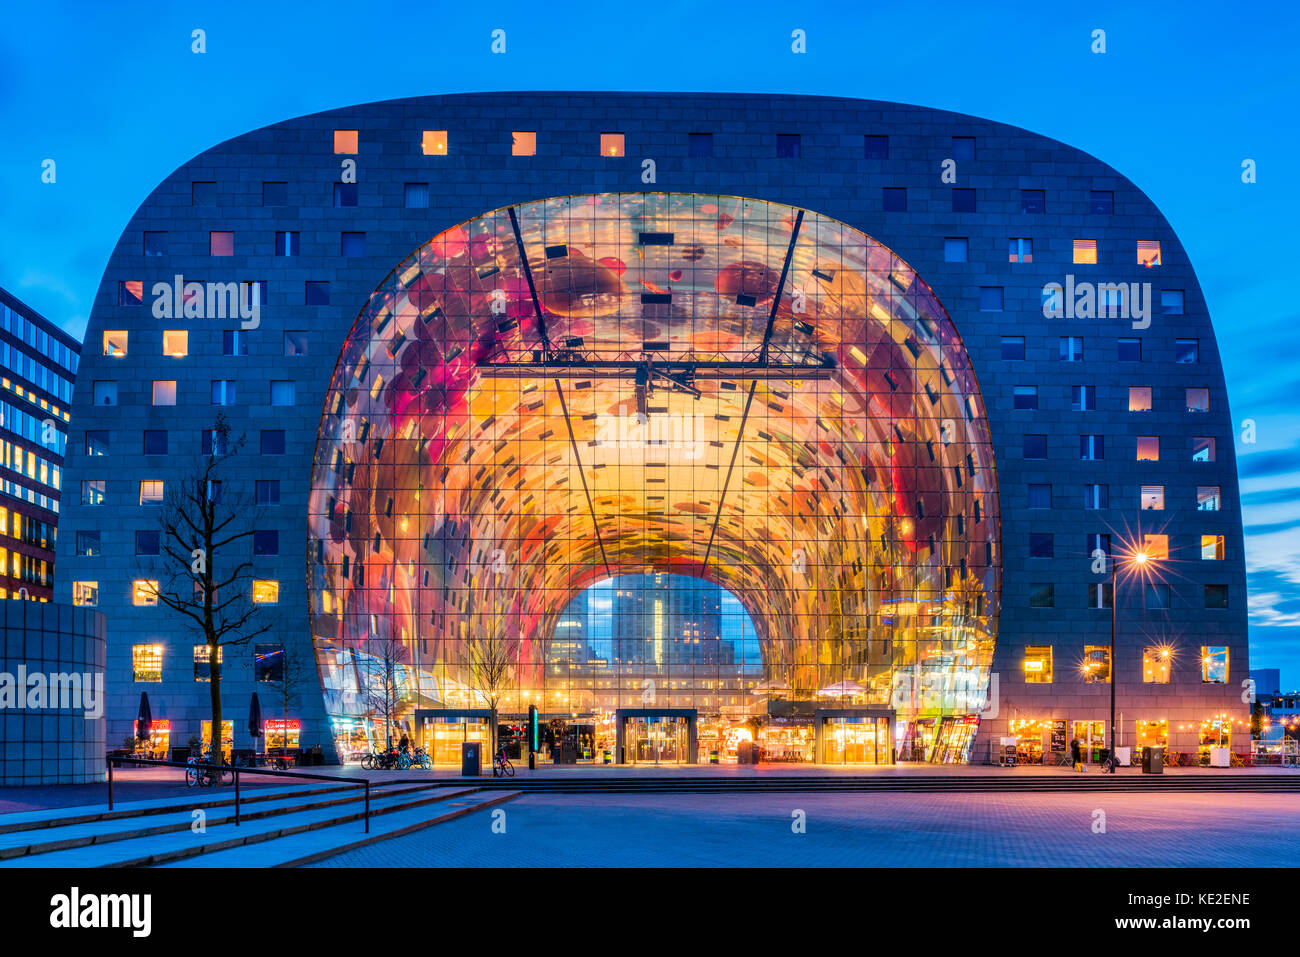 Market Hall in the Blaak district of Rotterdam, Netherlands at dusk. It is a residential and office building with - Stock Image